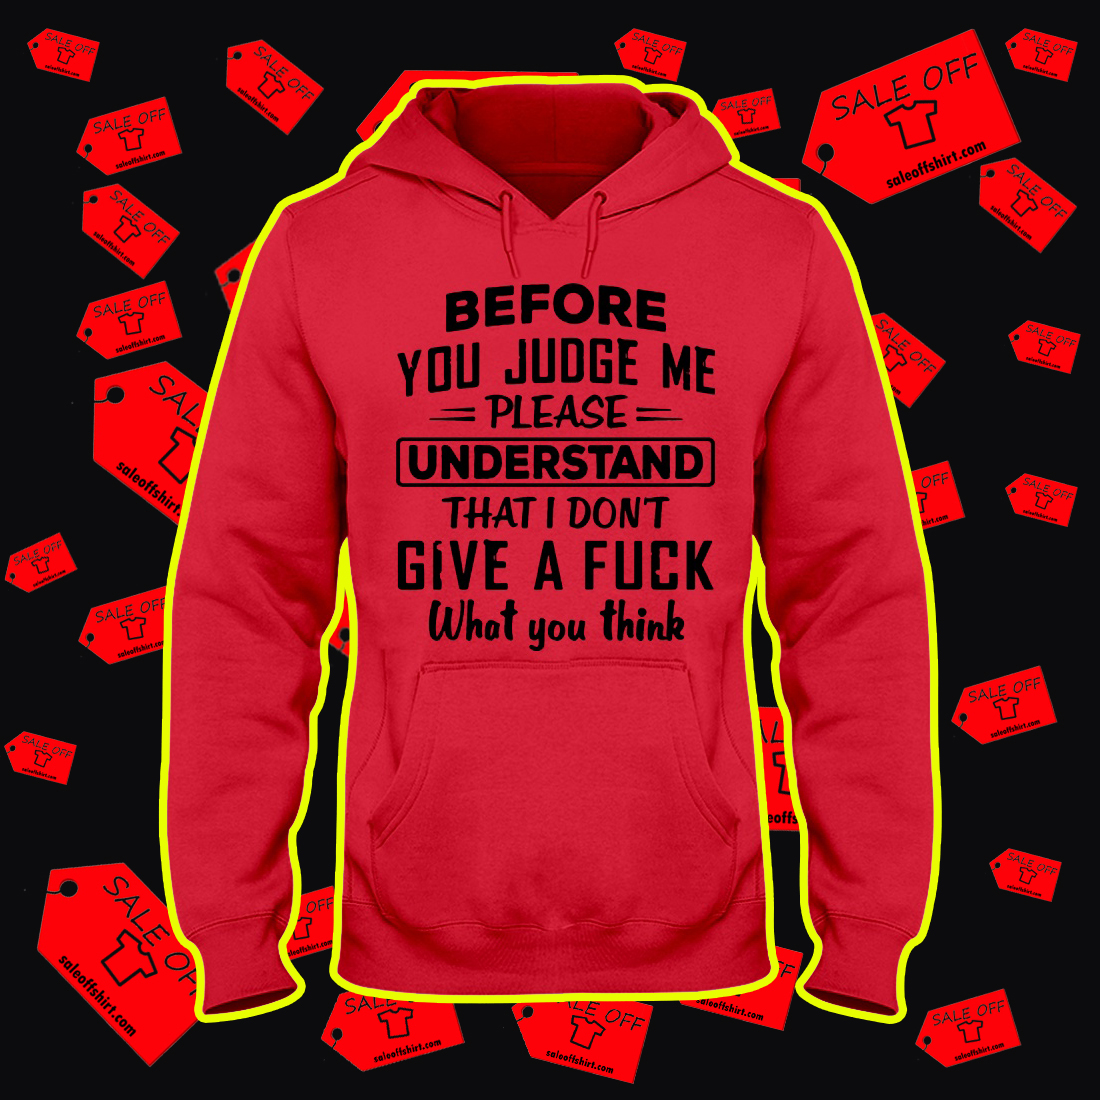 Before You Judge Me Please Understand That I Don't Give A Fuck What You Think hooded sweatshirt